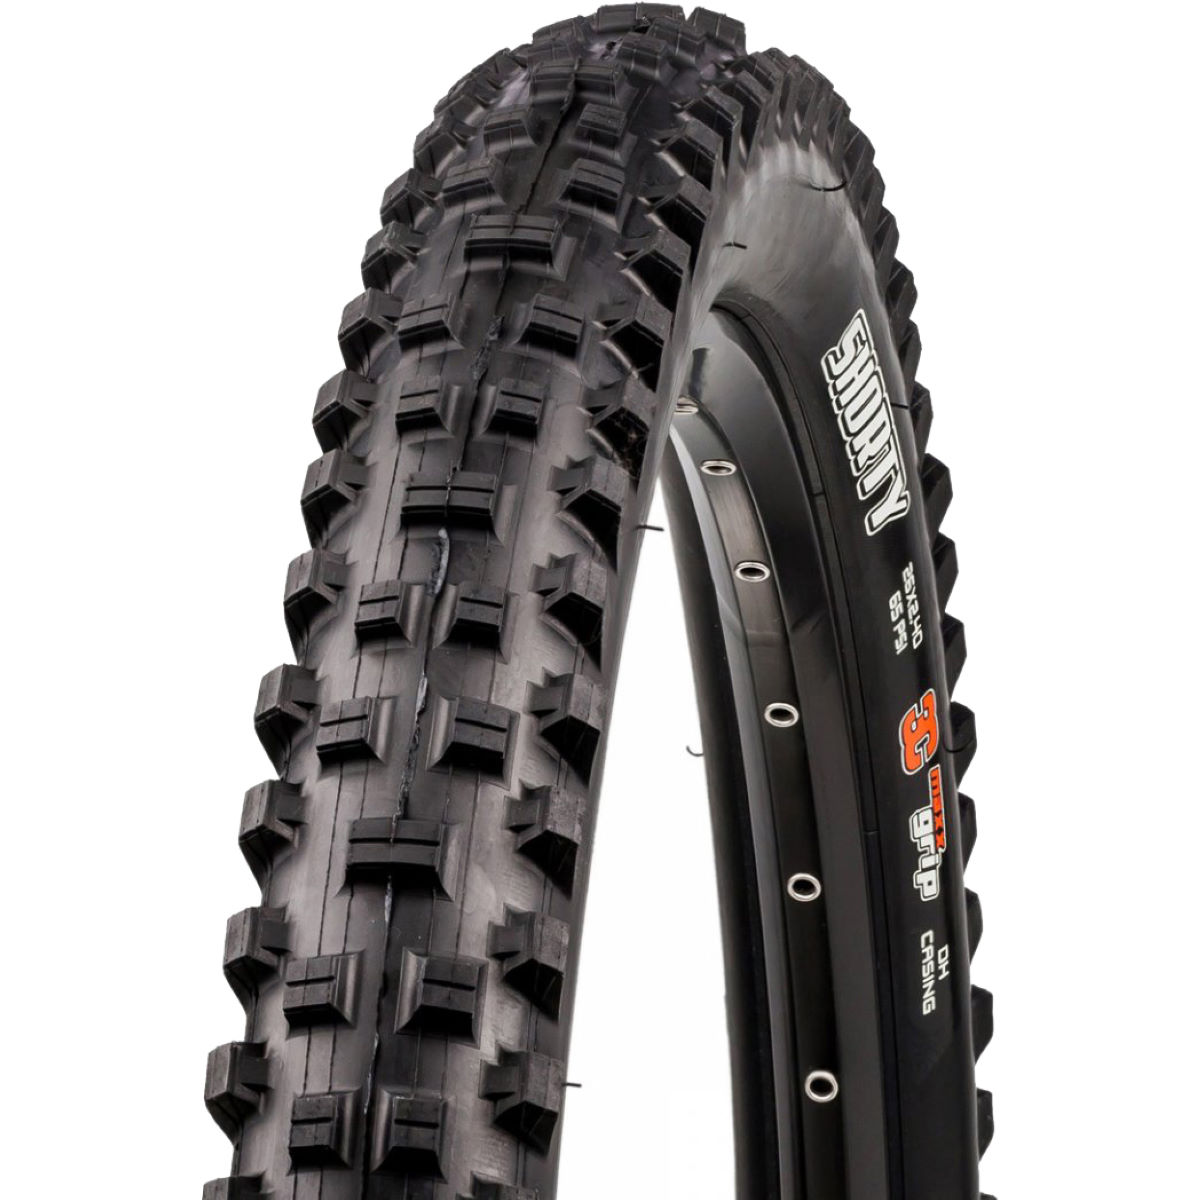 Pneu VTT Maxxis Shorty Wired - 2.4' 27.5' Noir